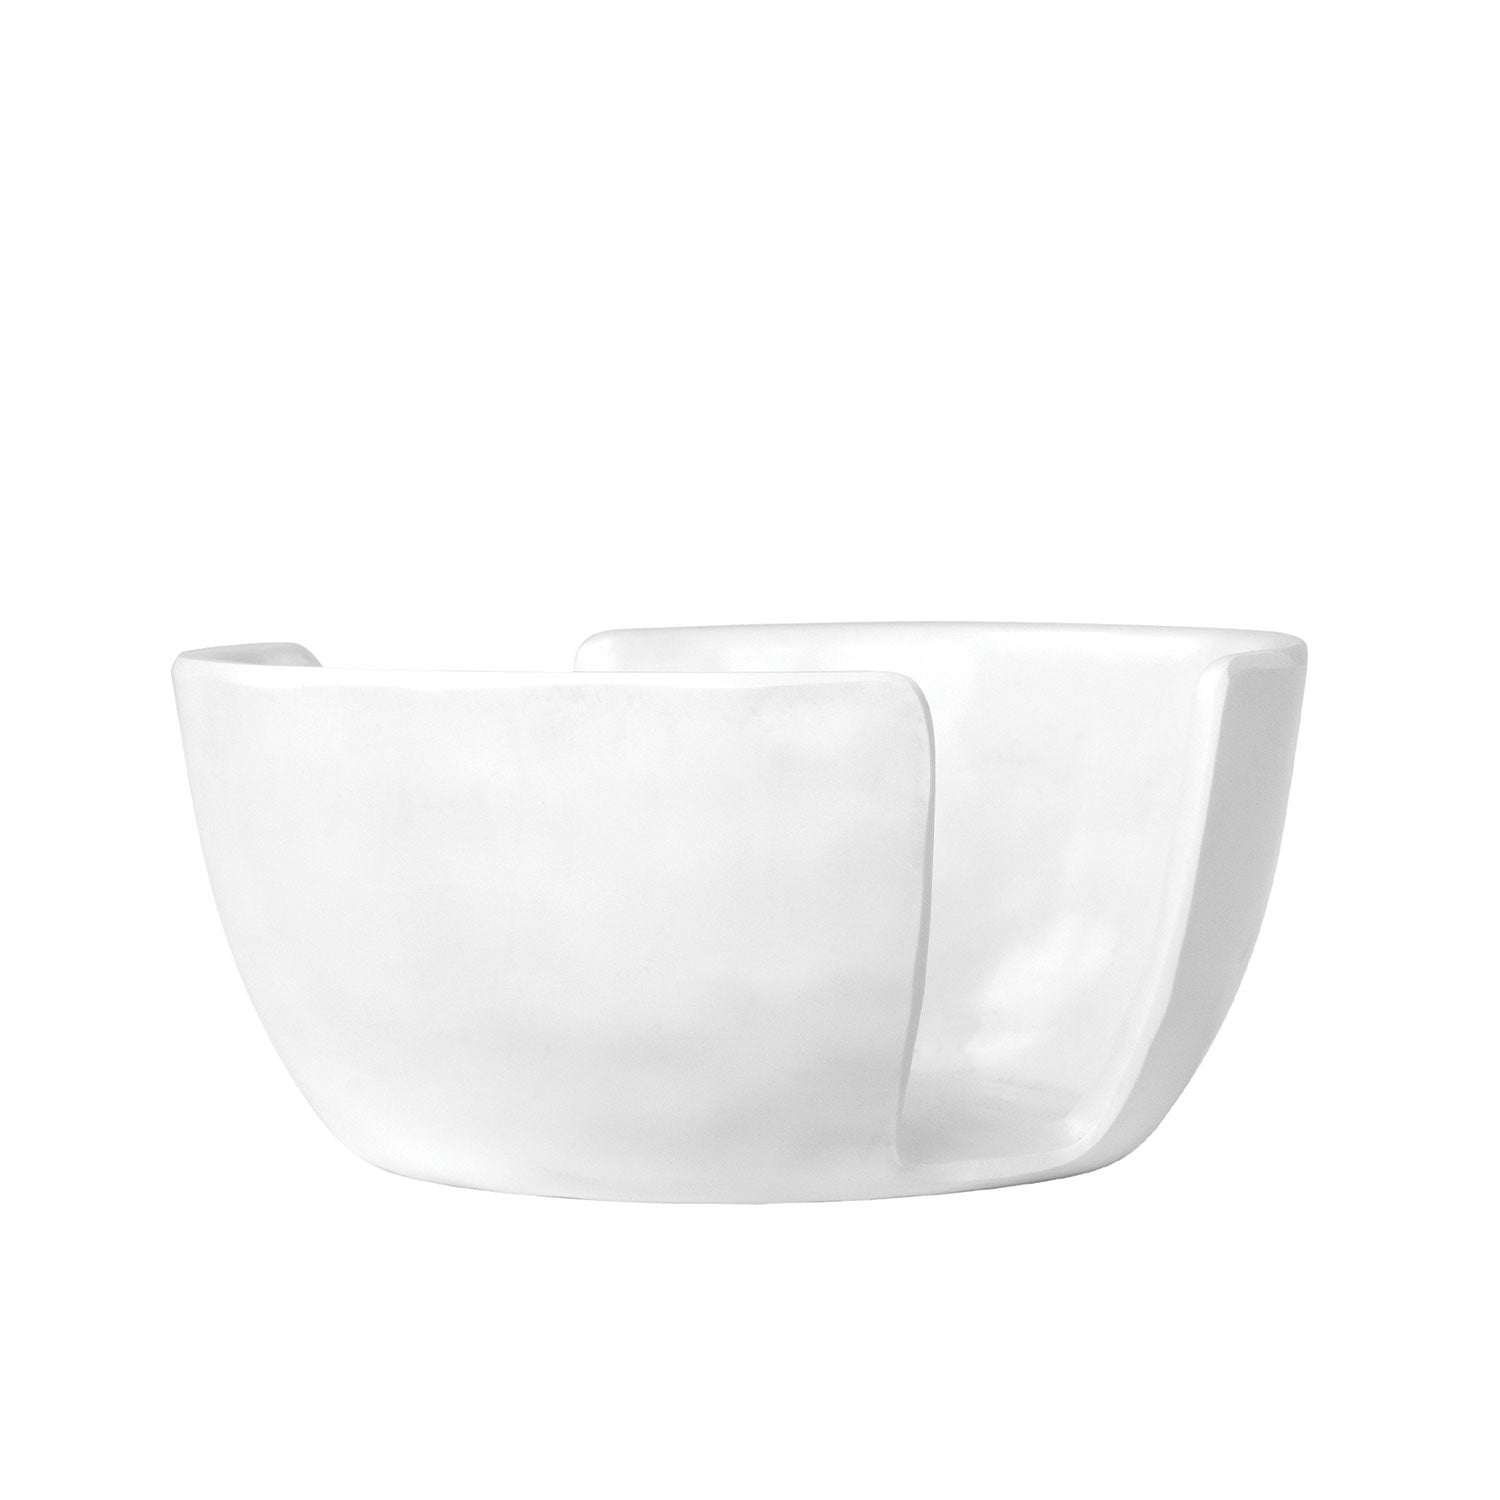 White on White Melamine Serveware Sponge Holder